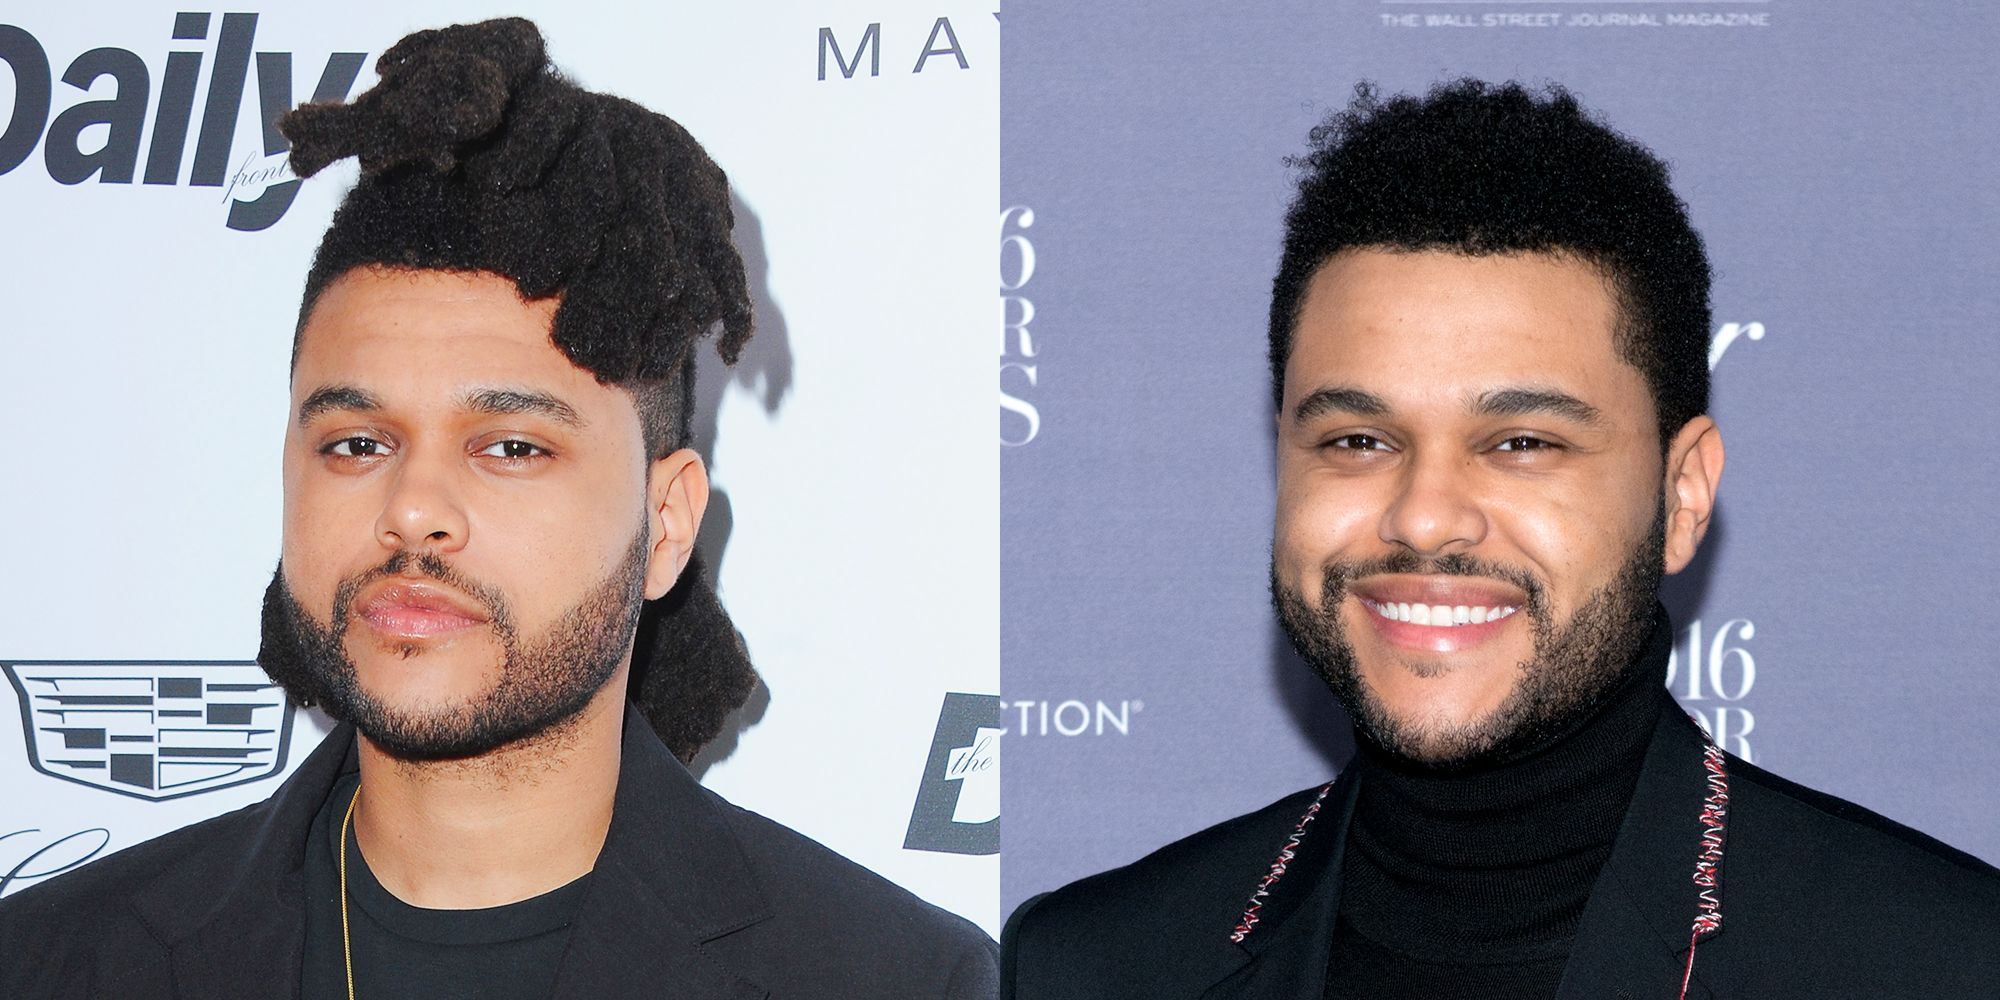 """<p>In September, Abel Tesfaye&nbsp&#x3B;debuted&nbsp&#x3B;the&nbsp&#x3B;album art for&nbsp&#x3B;<em data-redactor-tag=""""em"""">Starboy&nbsp&#x3B;</em>without his signature dreads.&nbsp&#x3B;<span class=""""redactor-invisible-space"""" data-verified=""""redactor"""" data-redactor-tag=""""span"""" data-redactor-class=""""redactor-invisible-space""""></span><strong data-redactor-tag=""""strong"""">MF-ing SHOOK!!!</strong></p>"""